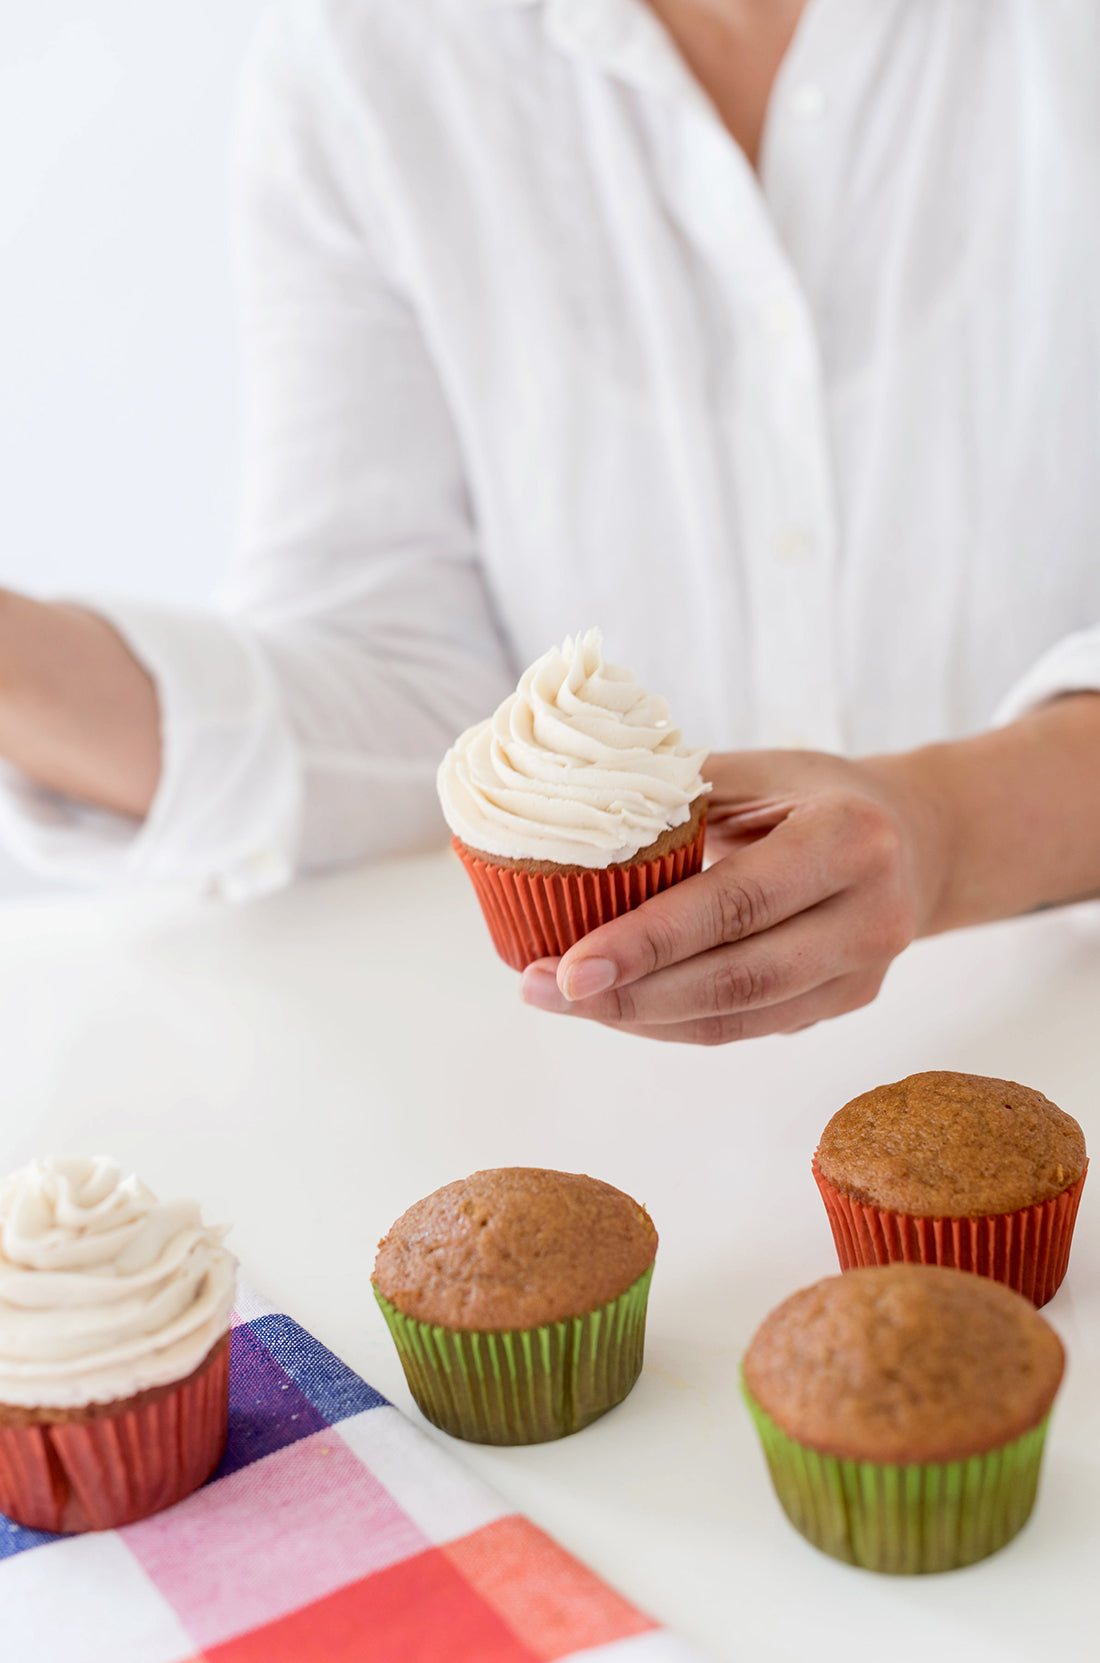 Image of a person frosting Miss Jones Baking Co Pumpkin Spice Latte (PSL) Cupcakes